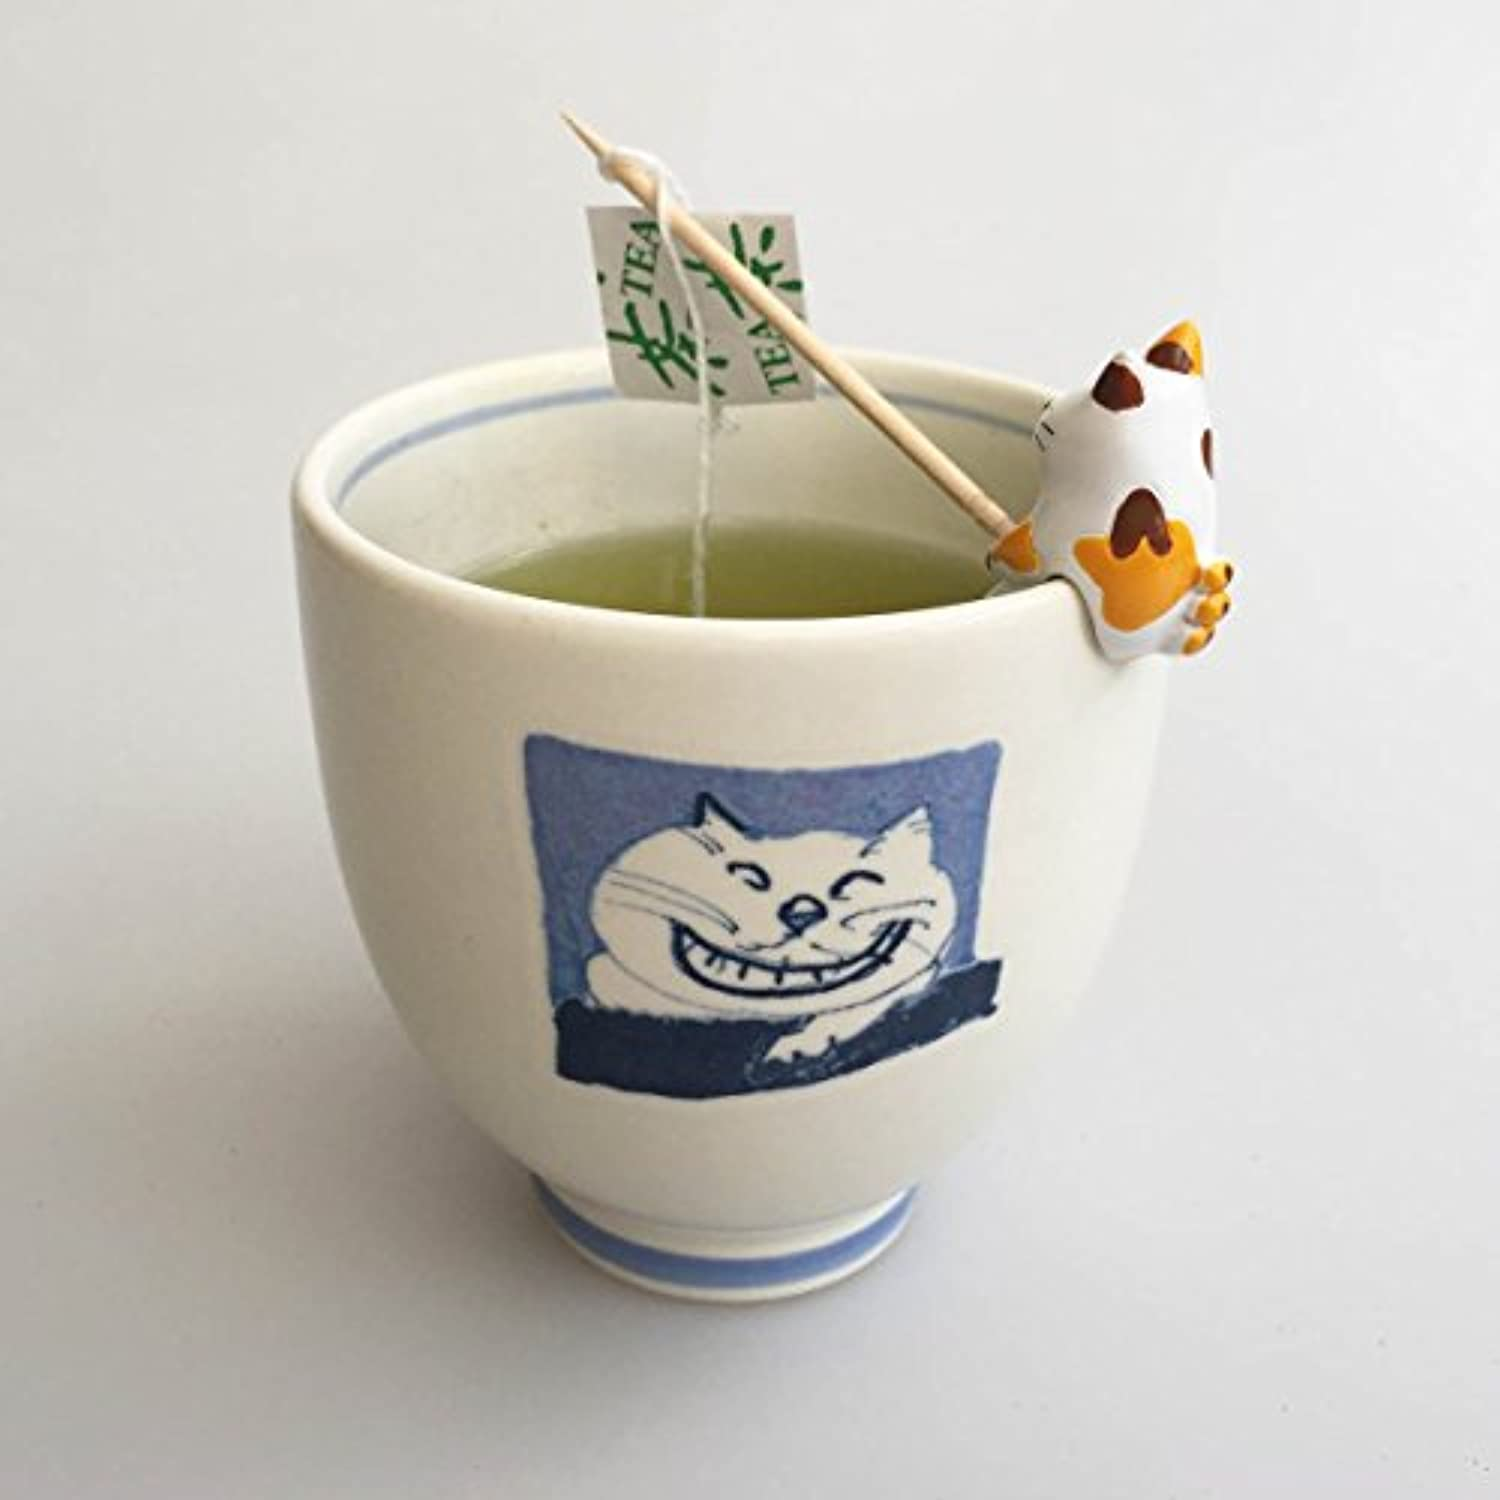 Cat Tea Tea Bag Fishing Deep Steamed Tea Hojicha Hot Summer Gift Cute Tea Gift Set Birthday Gift Cat Figure Included Japanese 1 Premium Green Tea And Matcha Online Marketplace Teaover Com